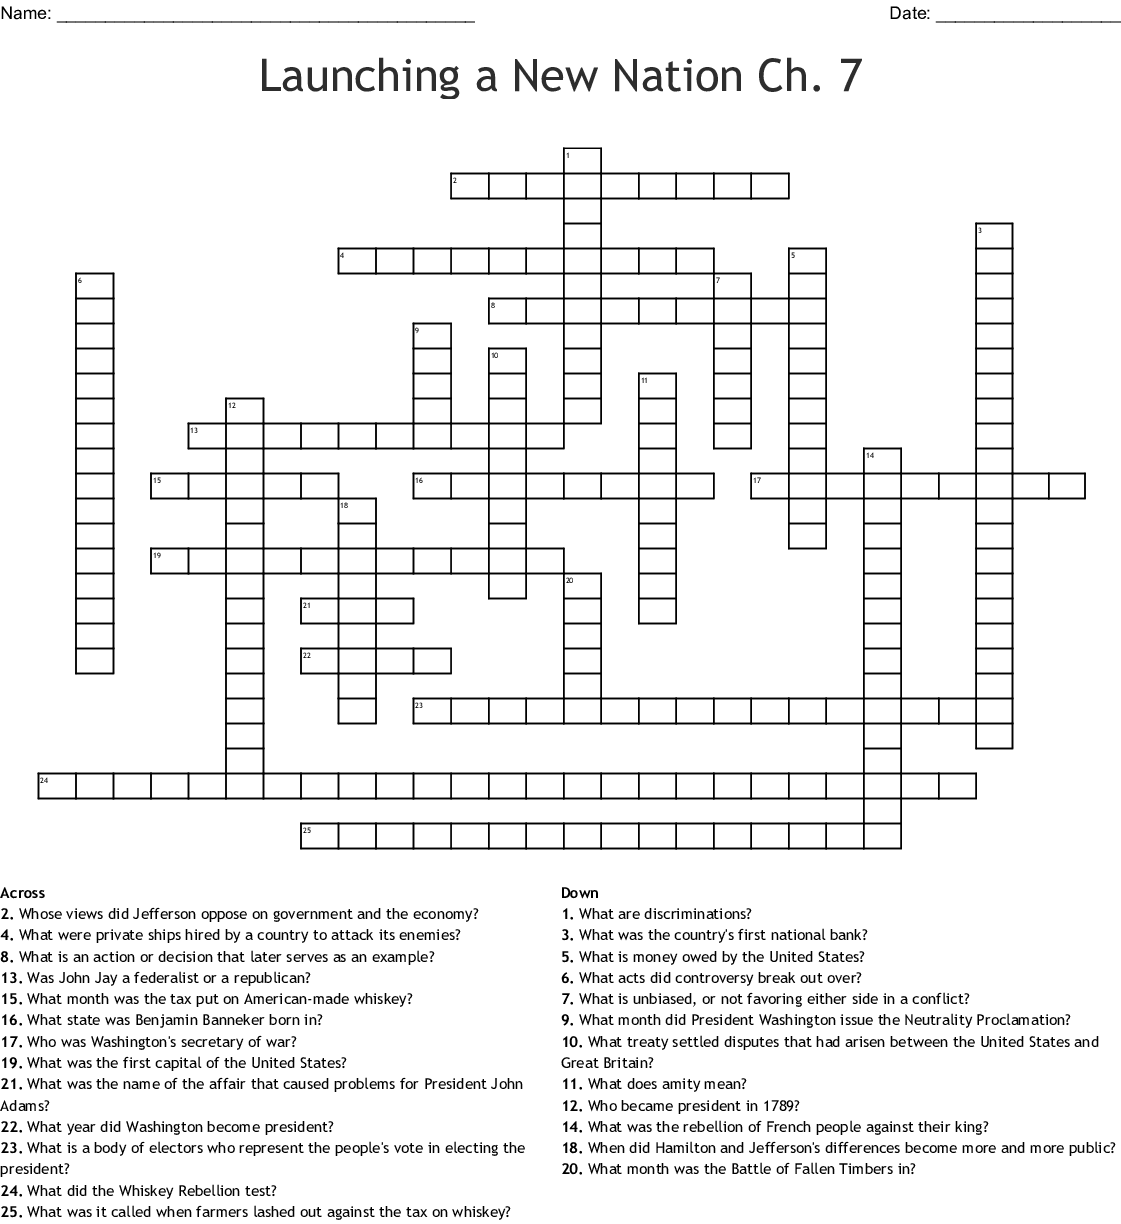 Chapter 7 Launching The New Nation Crossword